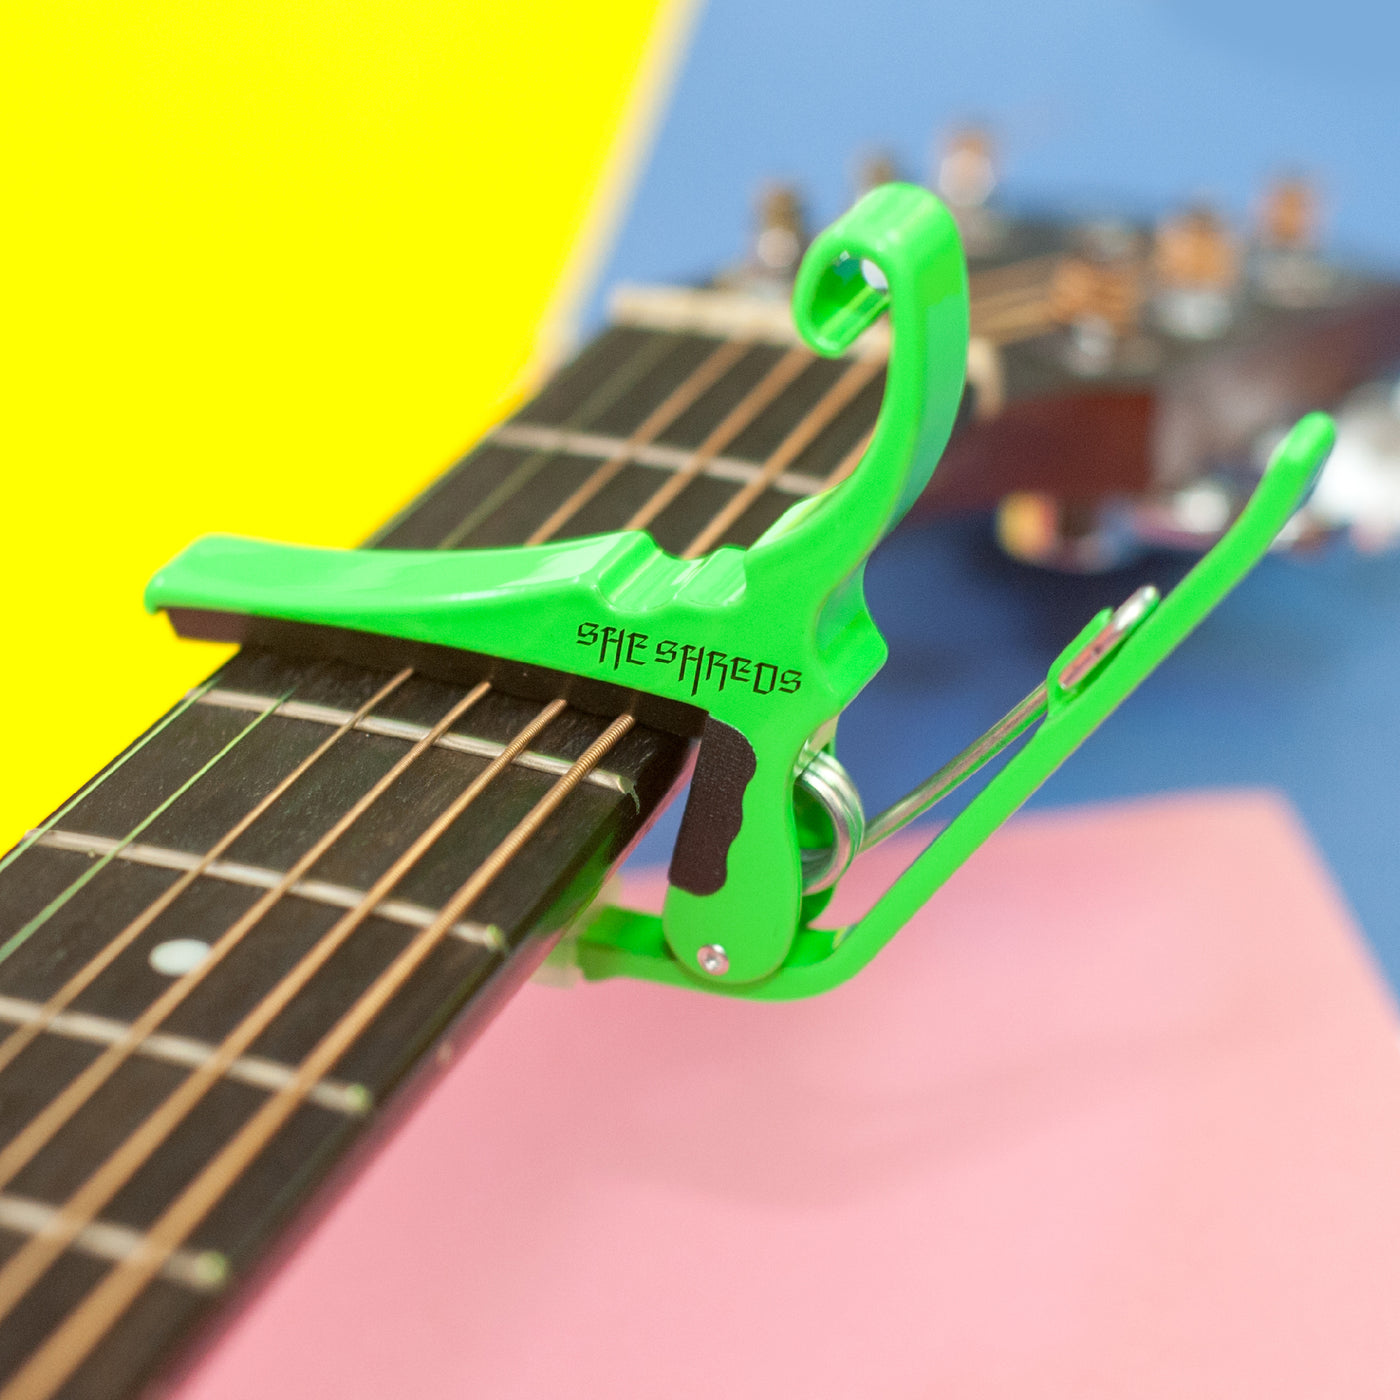 She Shreds x Kyser Limited Edition Acoustic Quick-Change Capo